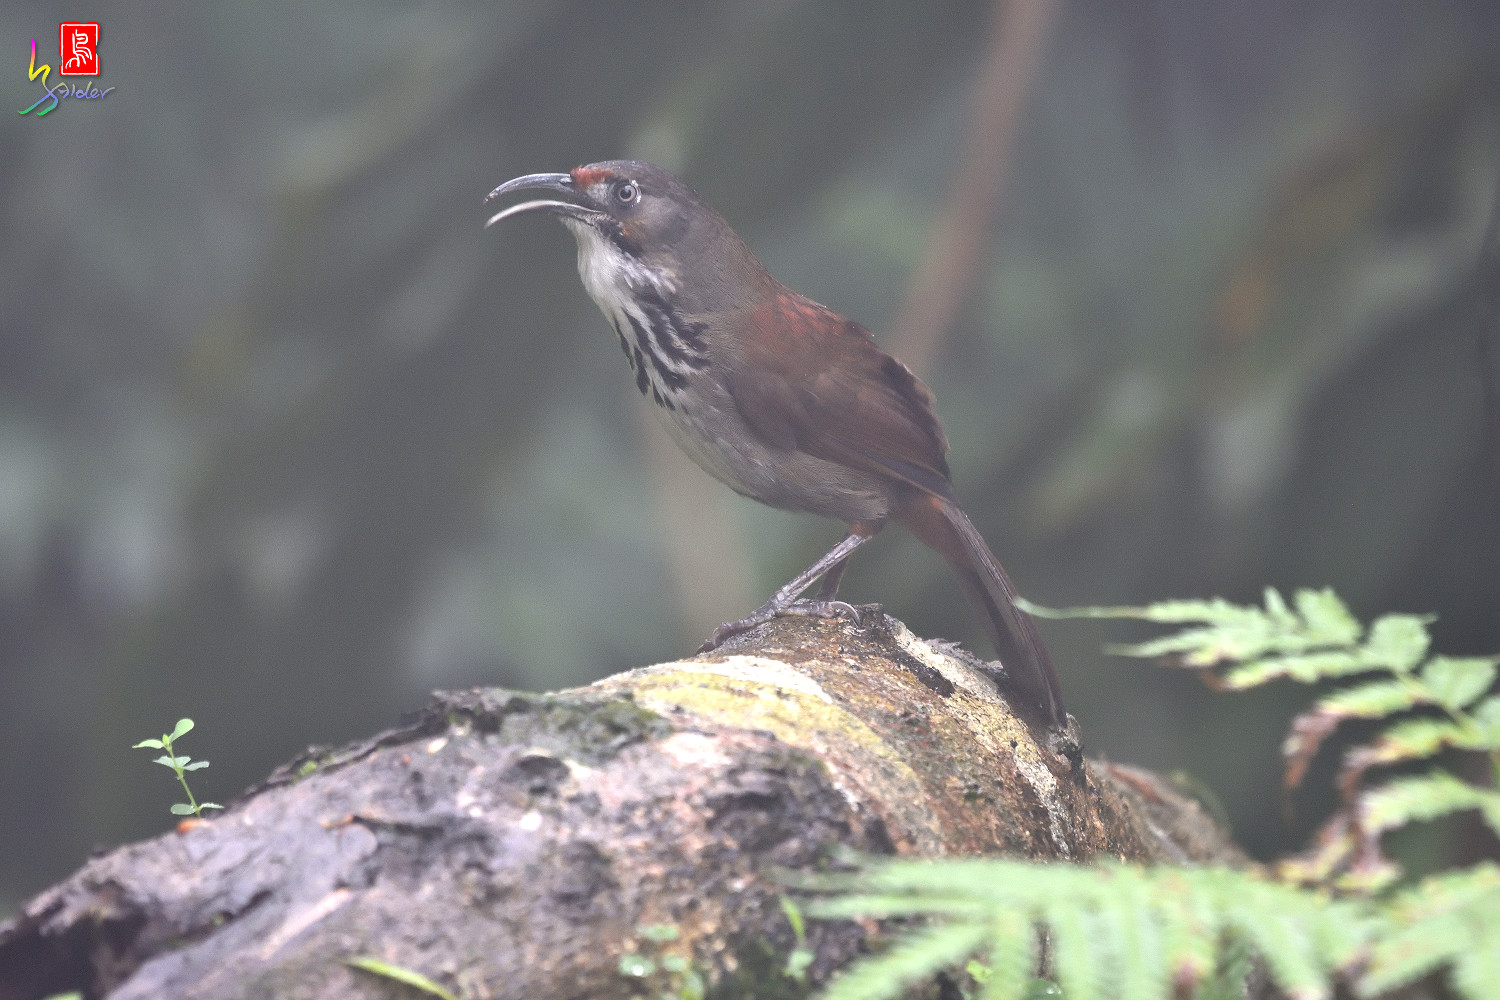 Rusty-cheeked_Scimitar-babbler_4366